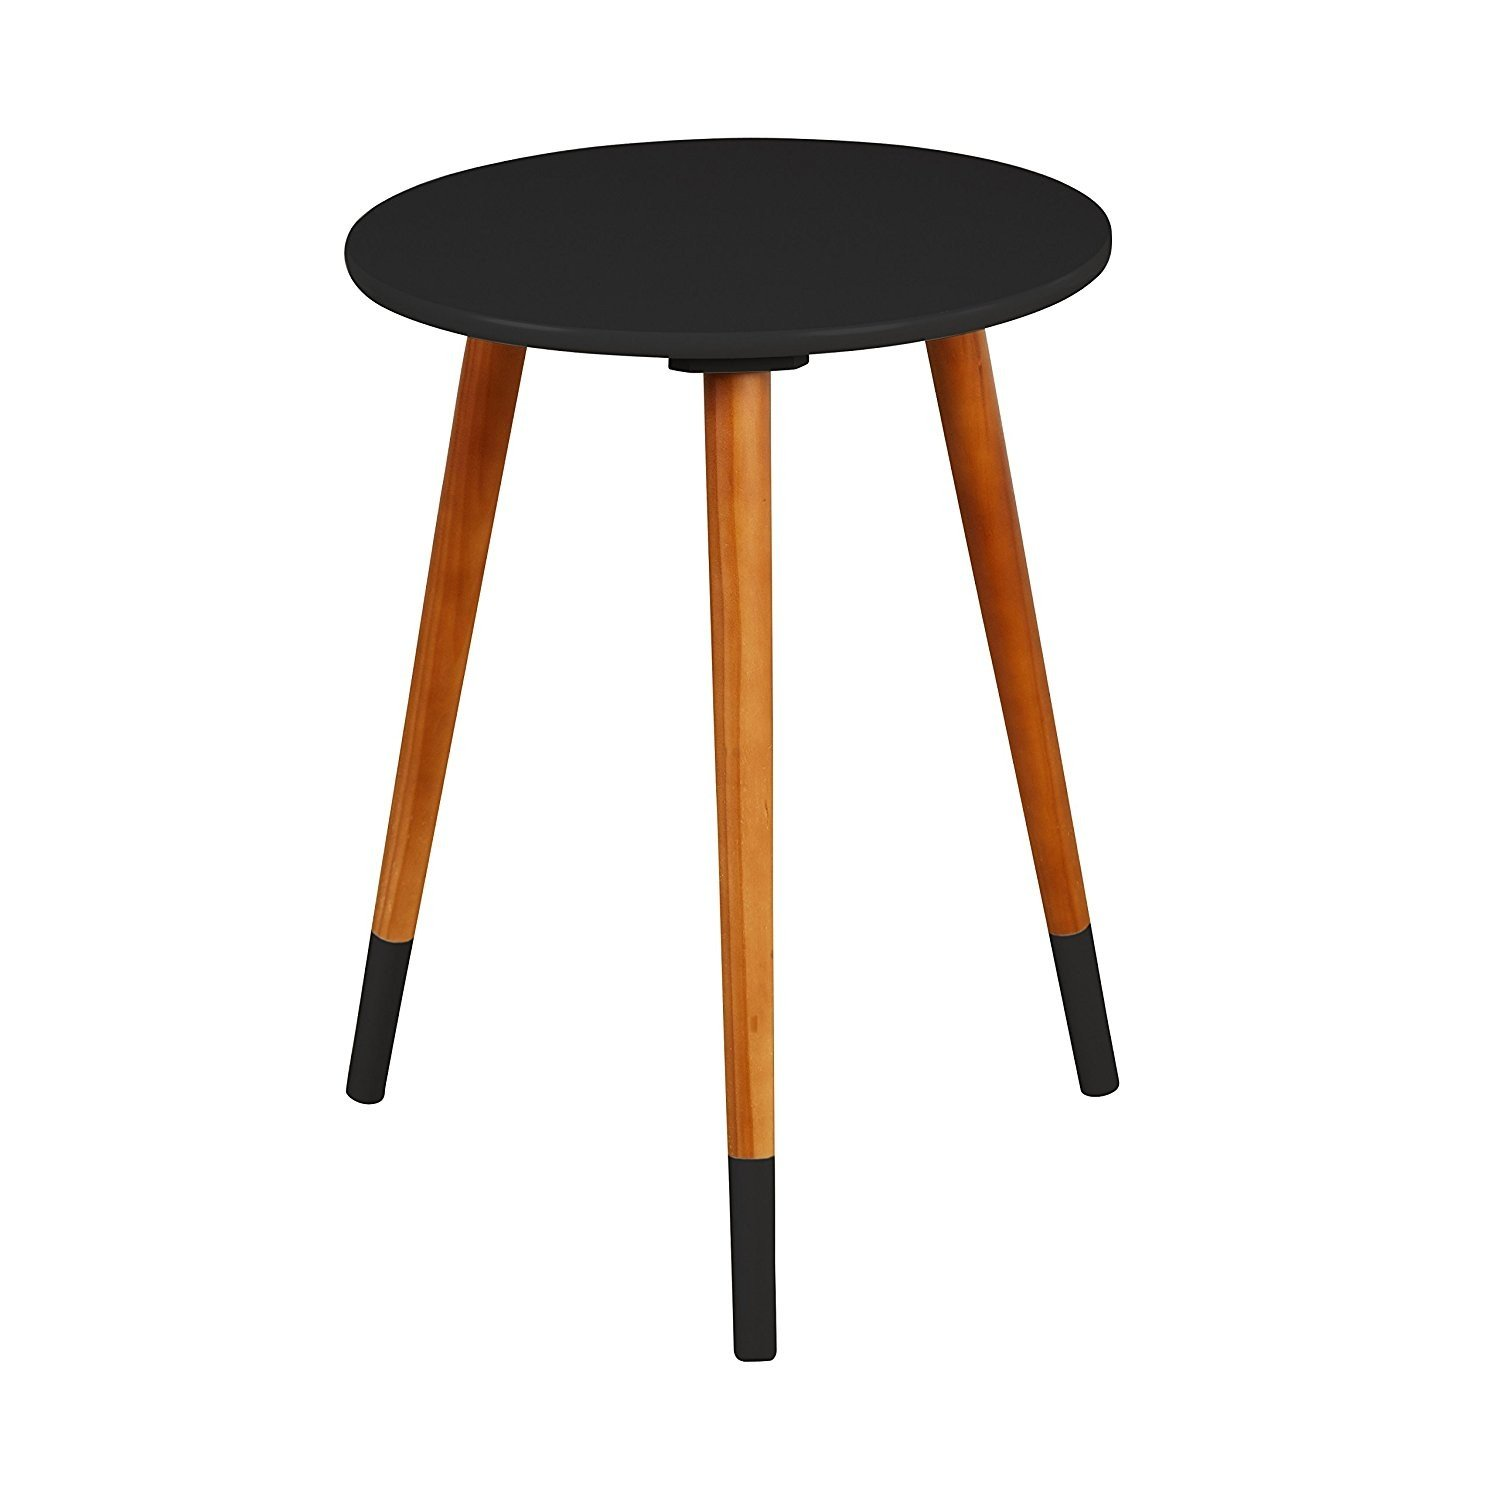 Indoor Multi-function Accent table Study Computer Desk Bedroom Living Room Modern Style End Table Sofa Side Table Coffee Table Modern Round End Table